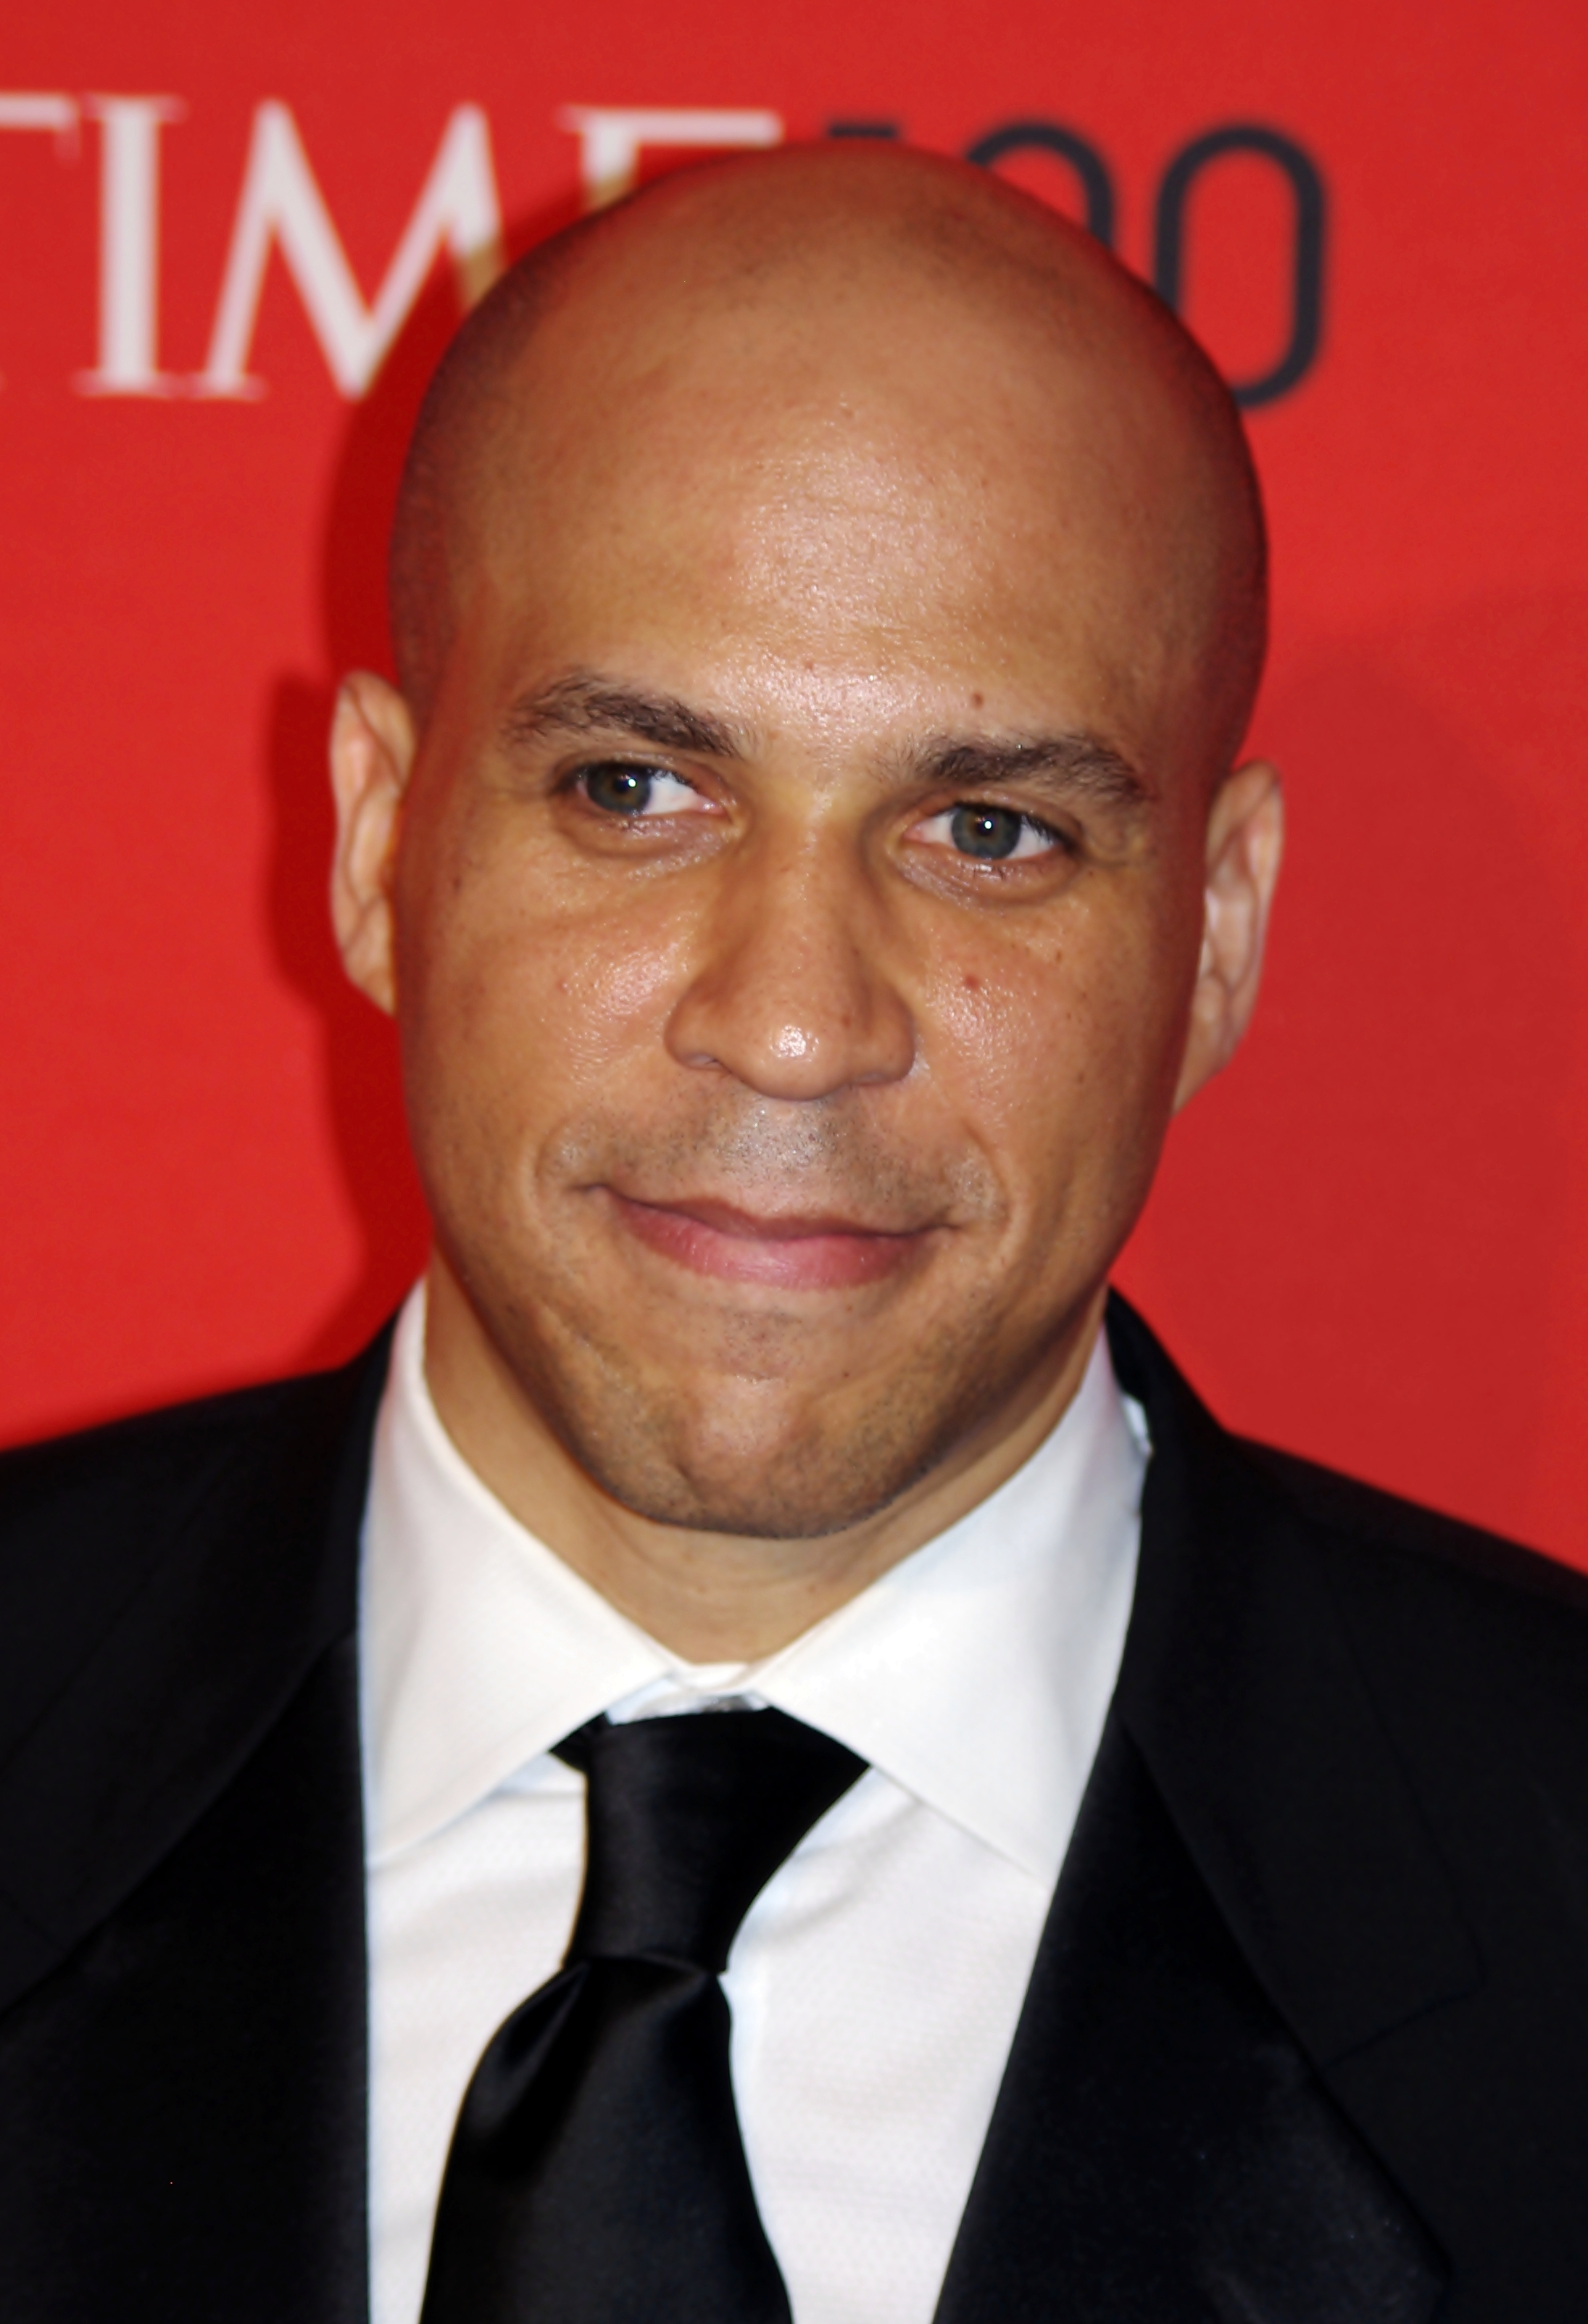 Political positions of Cory Booker - Wikipedia, the free encyclopedia